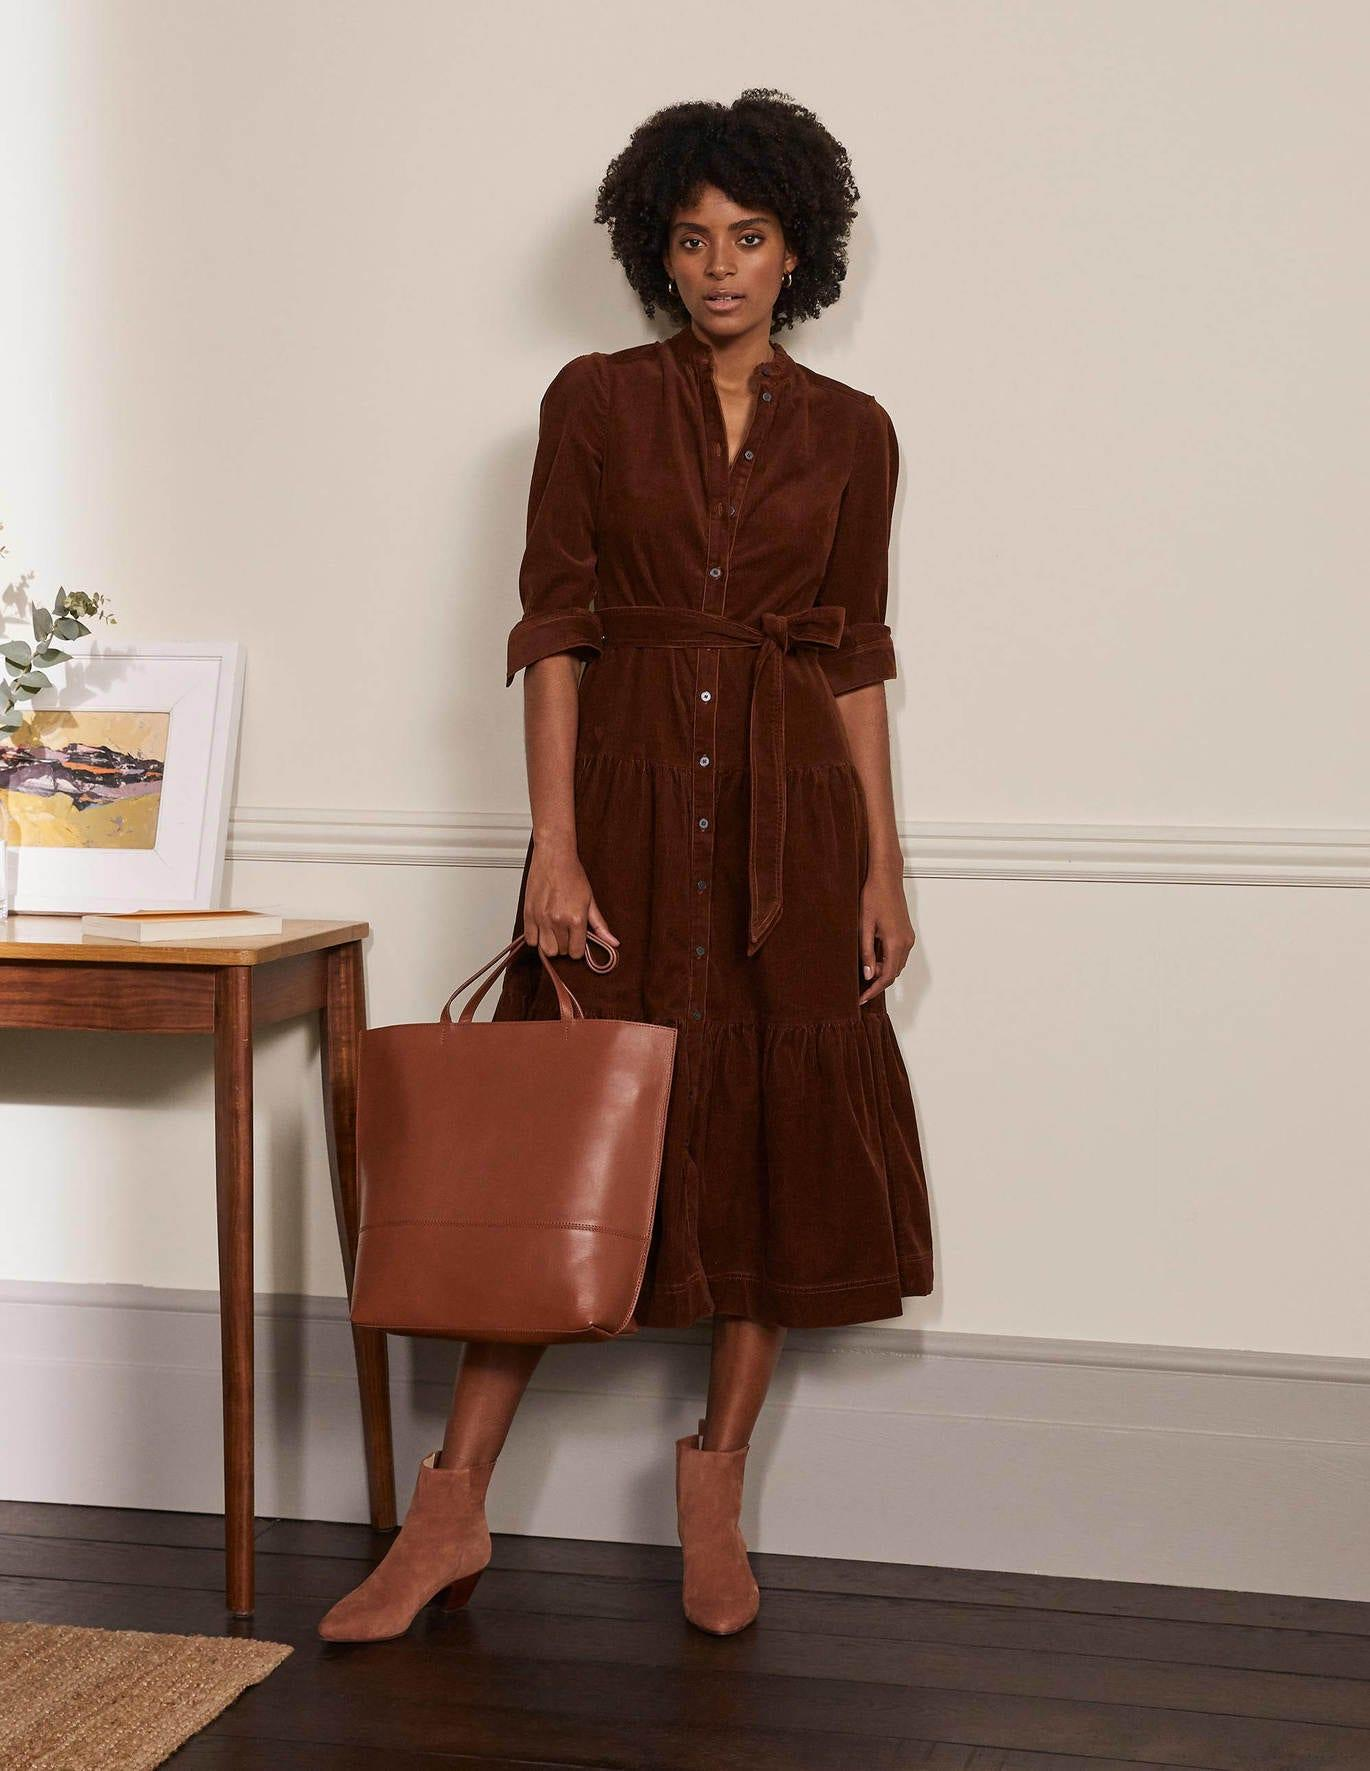 Brown Shirt Dress Monochrome Outfit Inspo. Brown fashion is back in town. In a big way. Autumnal, retro, animal, corduroy. Yup, it's brown's time to shine this season. If you want some inspiration for how to wear brown and what colours go with brown, then it's all here. We have lots of wearable looks that you can recreate really easily with the clothes you already have or with a few wardrobe updates. | www.kittyandb.com #Brown #Brownaesthetic #ShirtDress #Dress